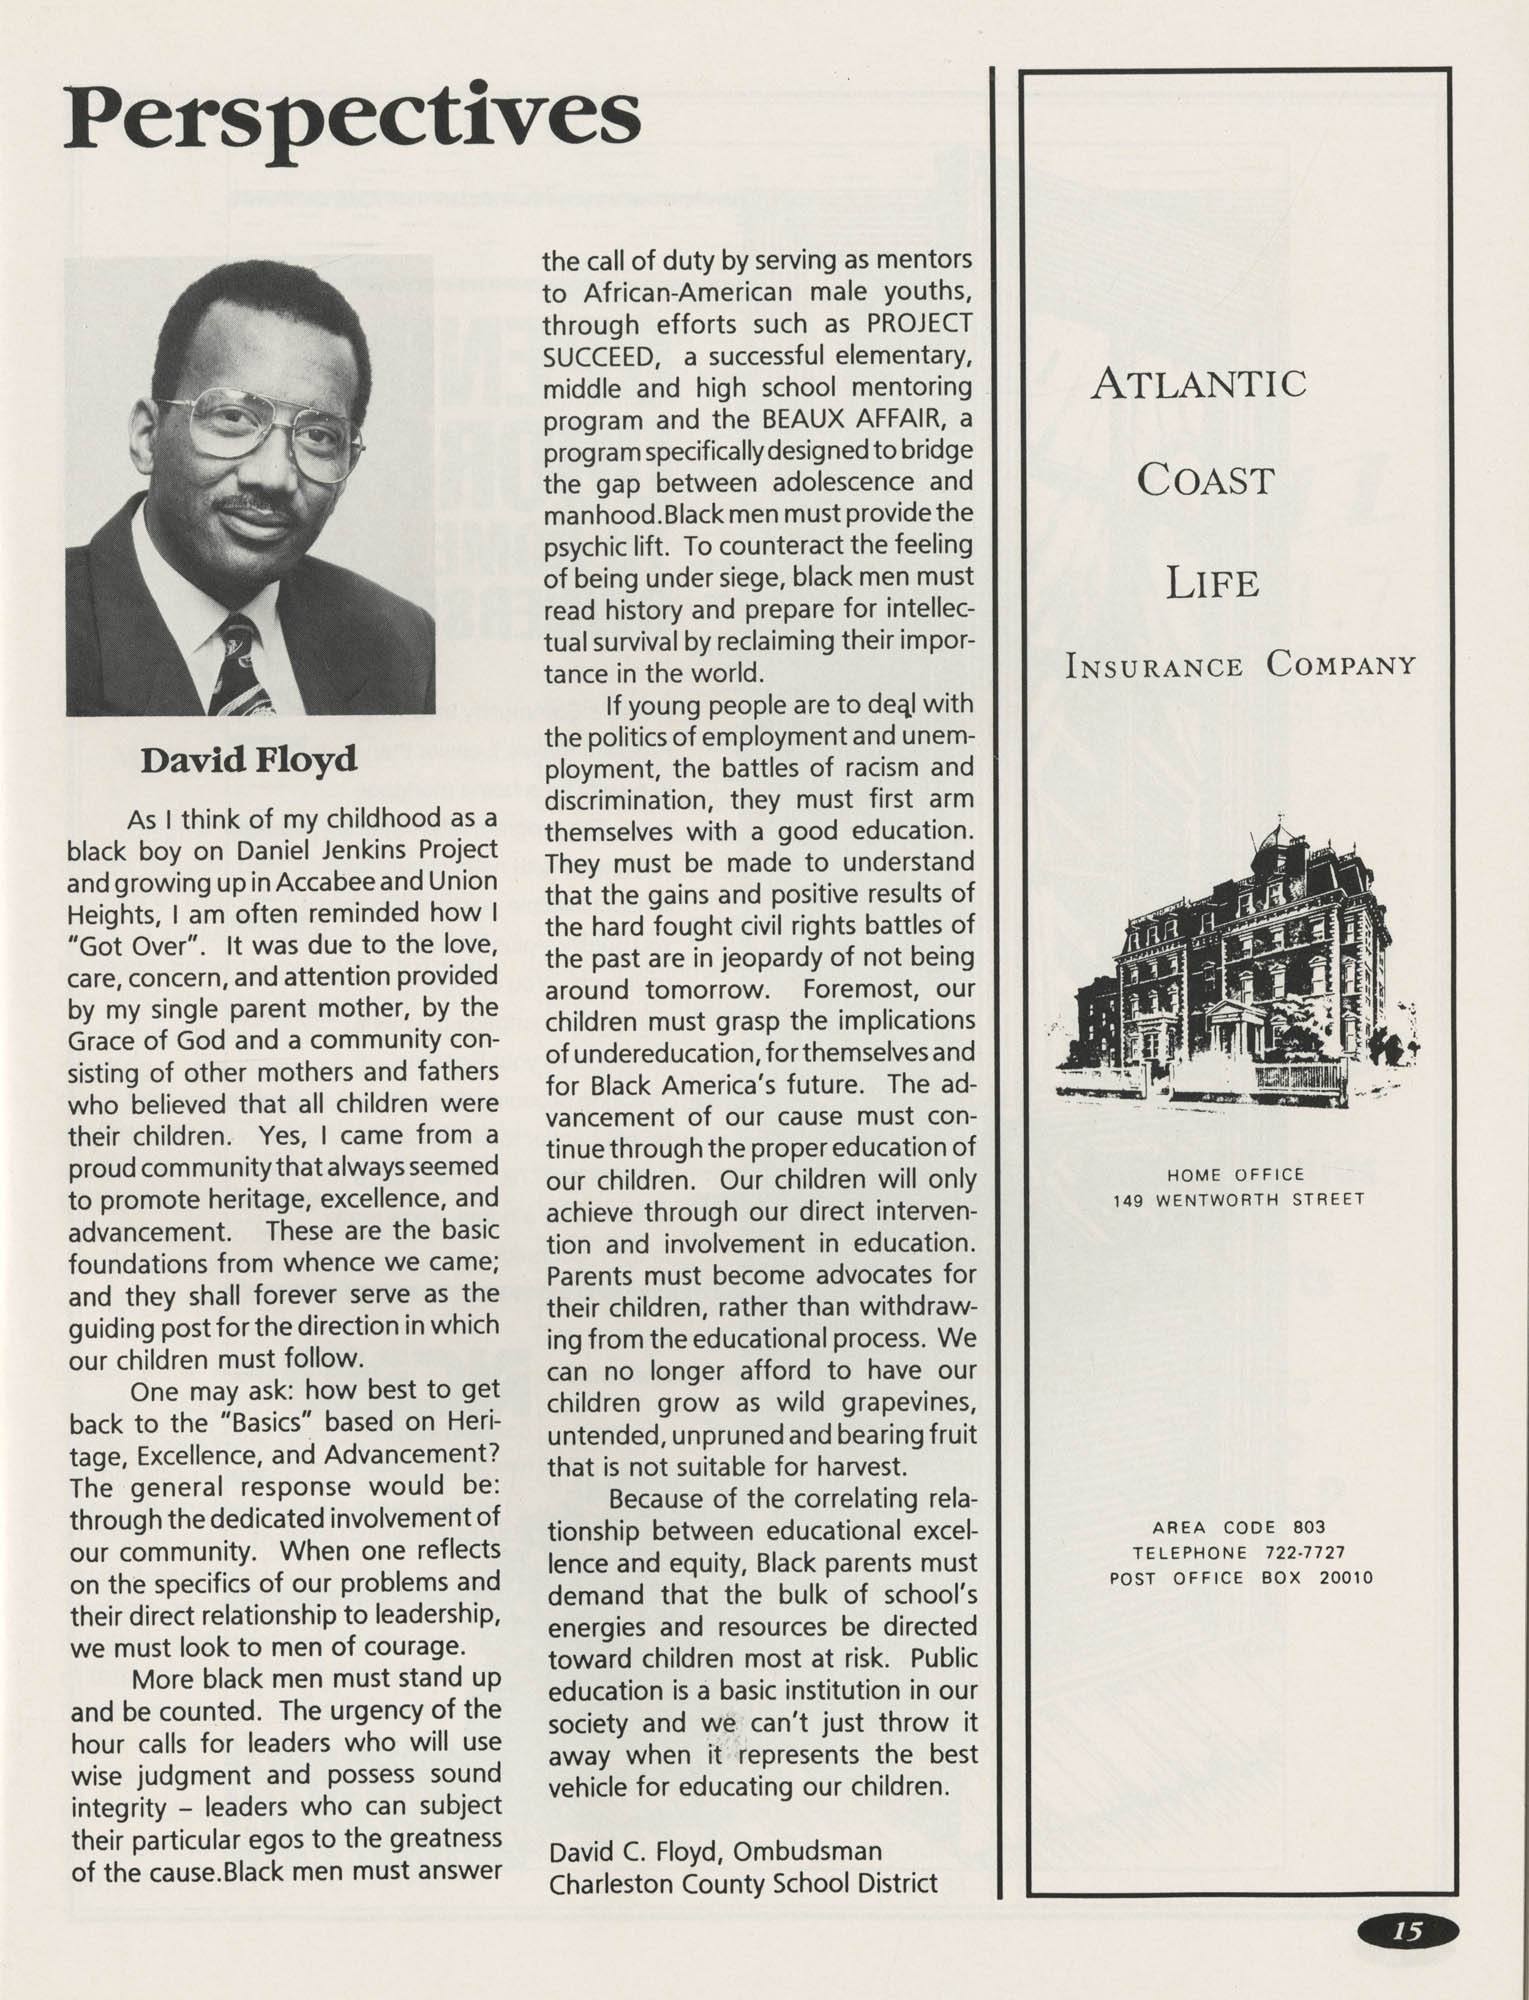 1991 Freedom Fund Magazine, Charleston Branch of the NAACP, Page 15